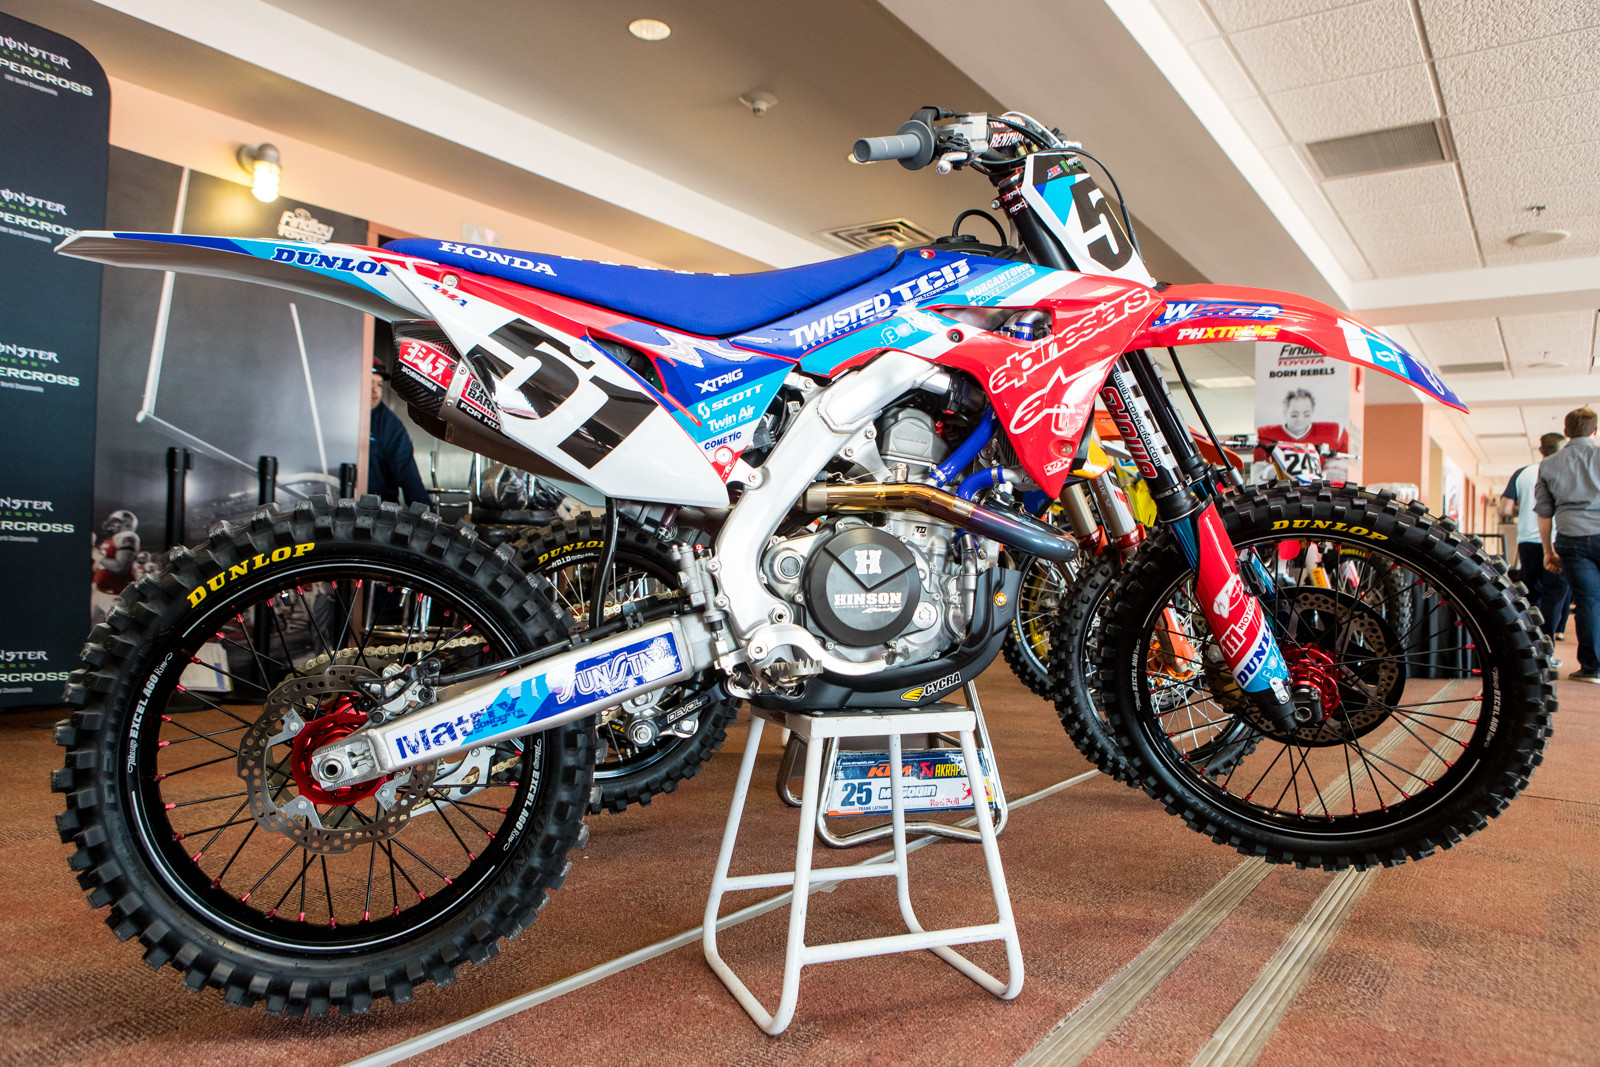 Justin Barcia's new CRF450R fits his style, wild!